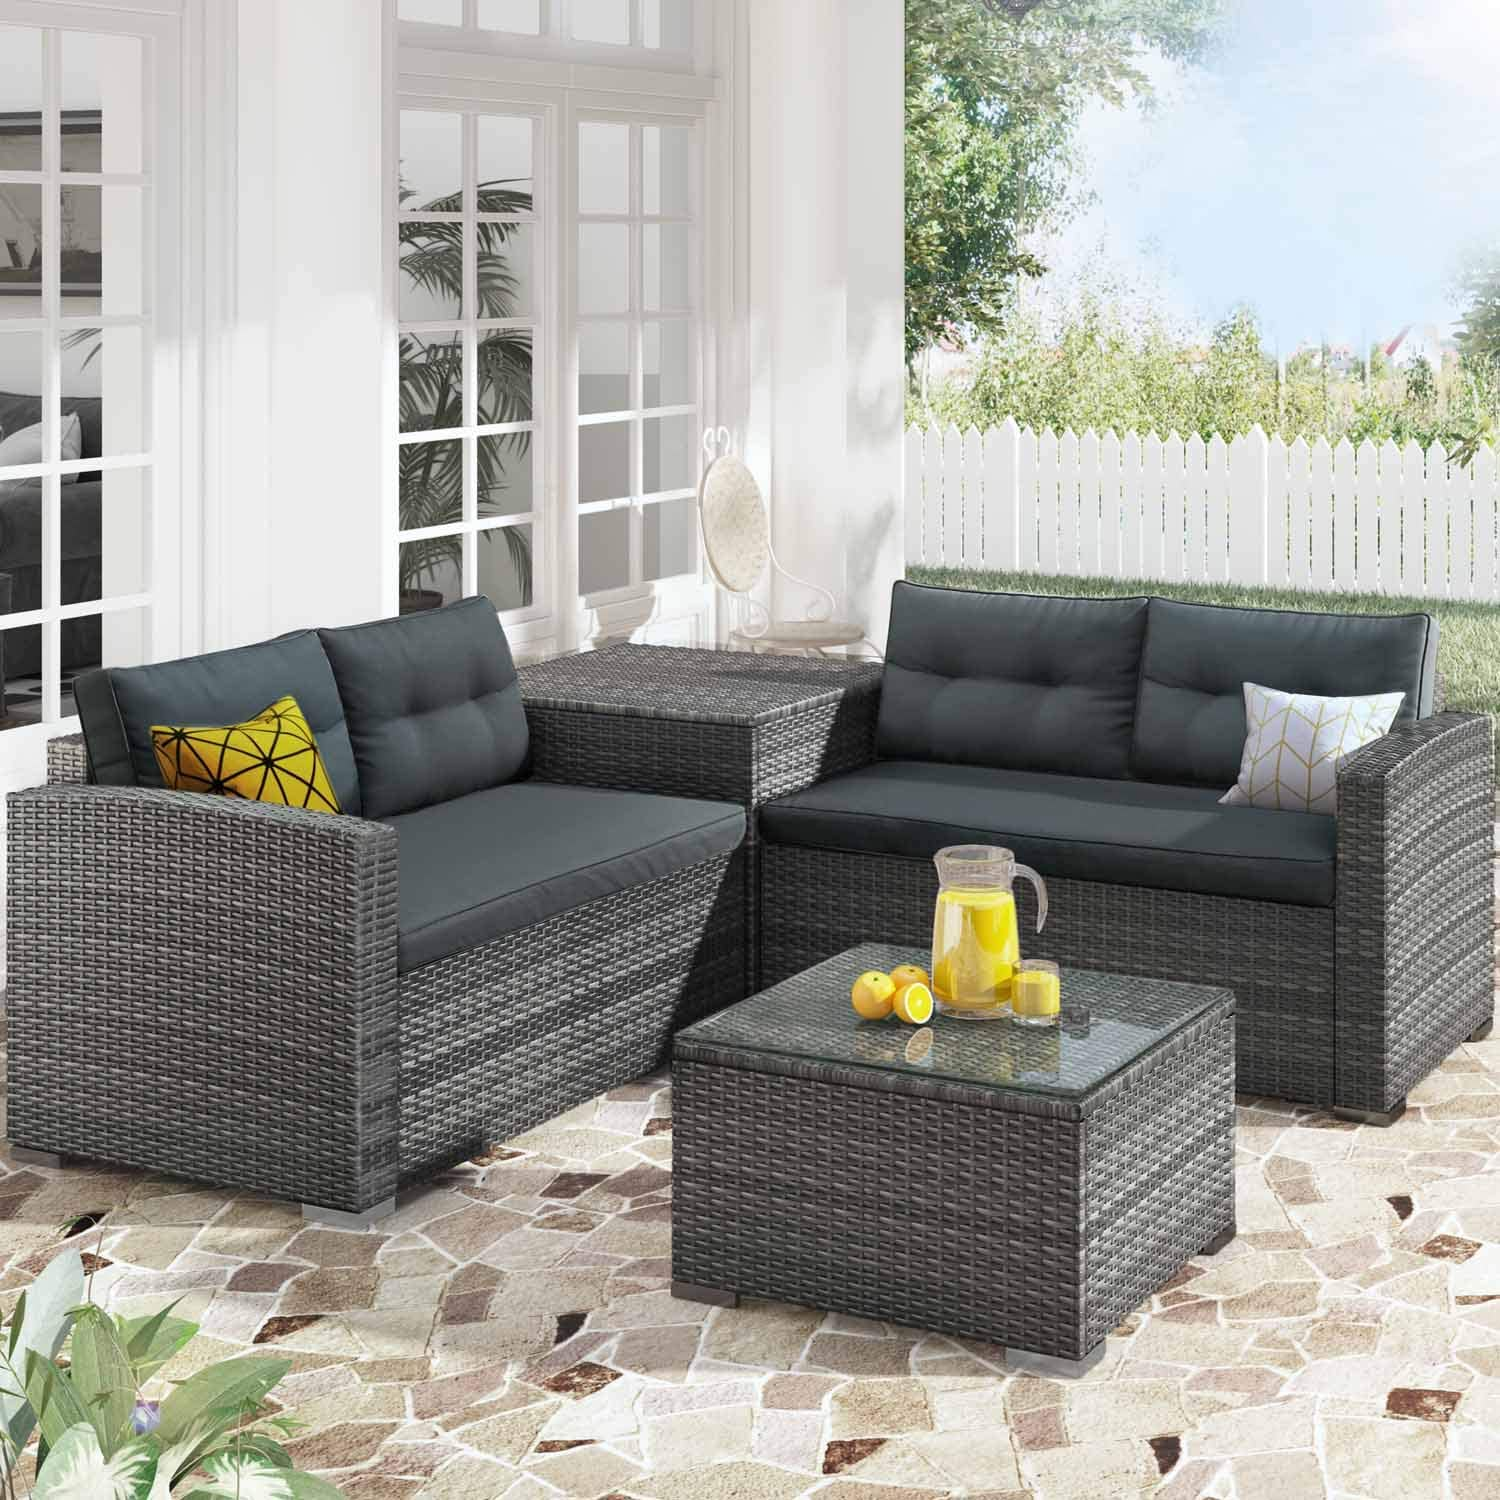 NICESOUL Outdoor Patio Furniture Sofa Set 4-Seatings with Large Storage Box and Coffe Table PE Rattan Wicker Conversation Sets (Grey)